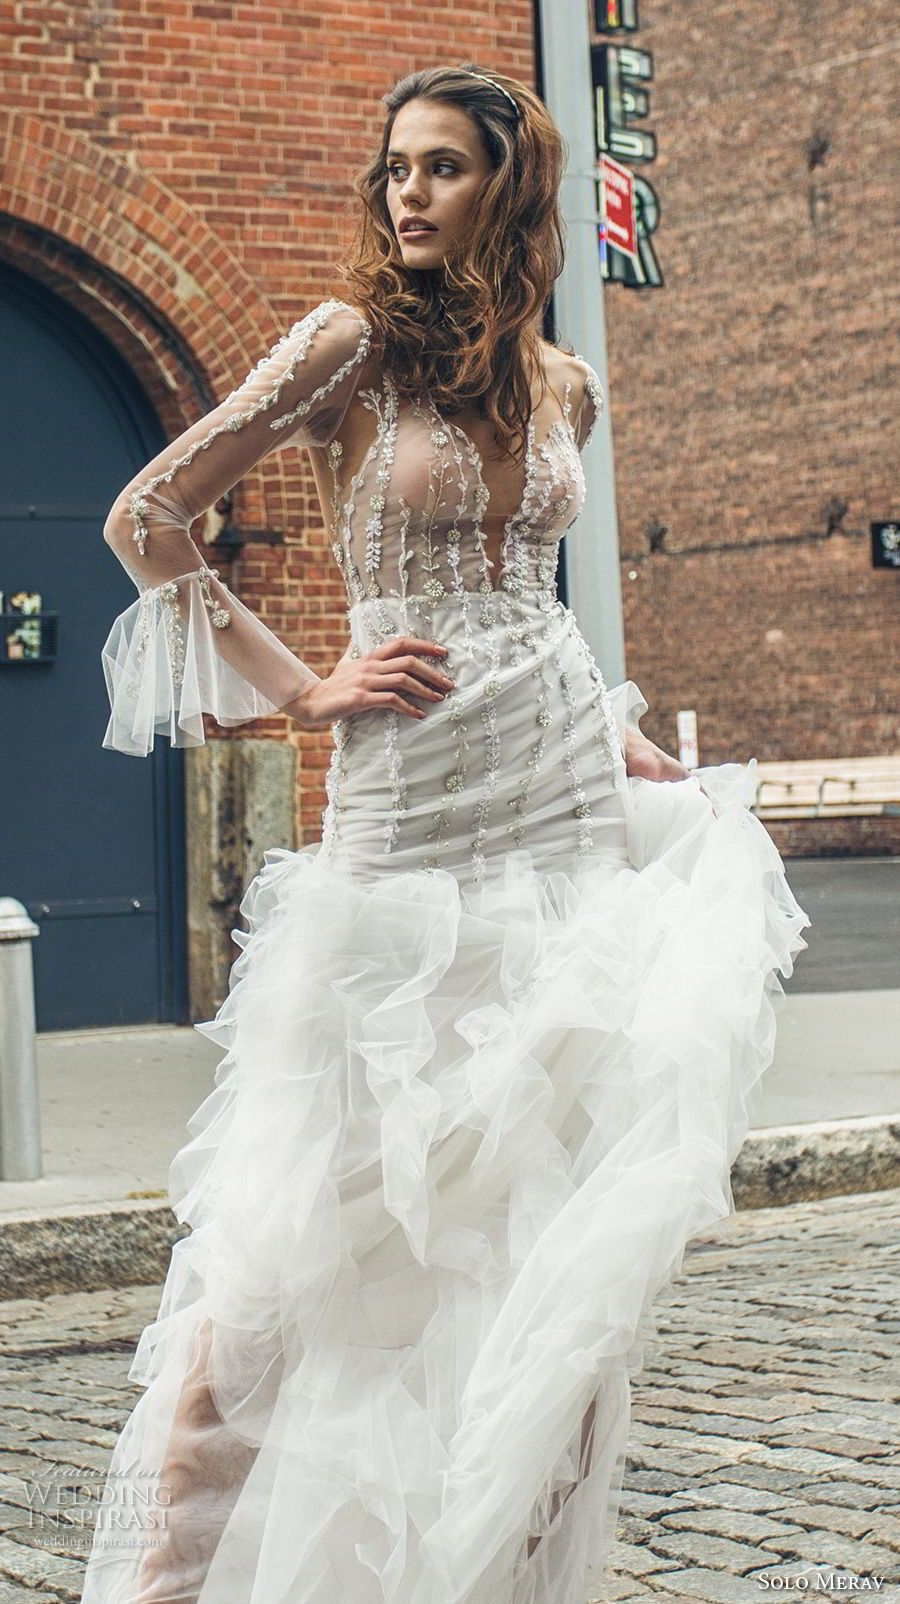 Solo merav wedding dresses u ucwhite princessud bridal collection